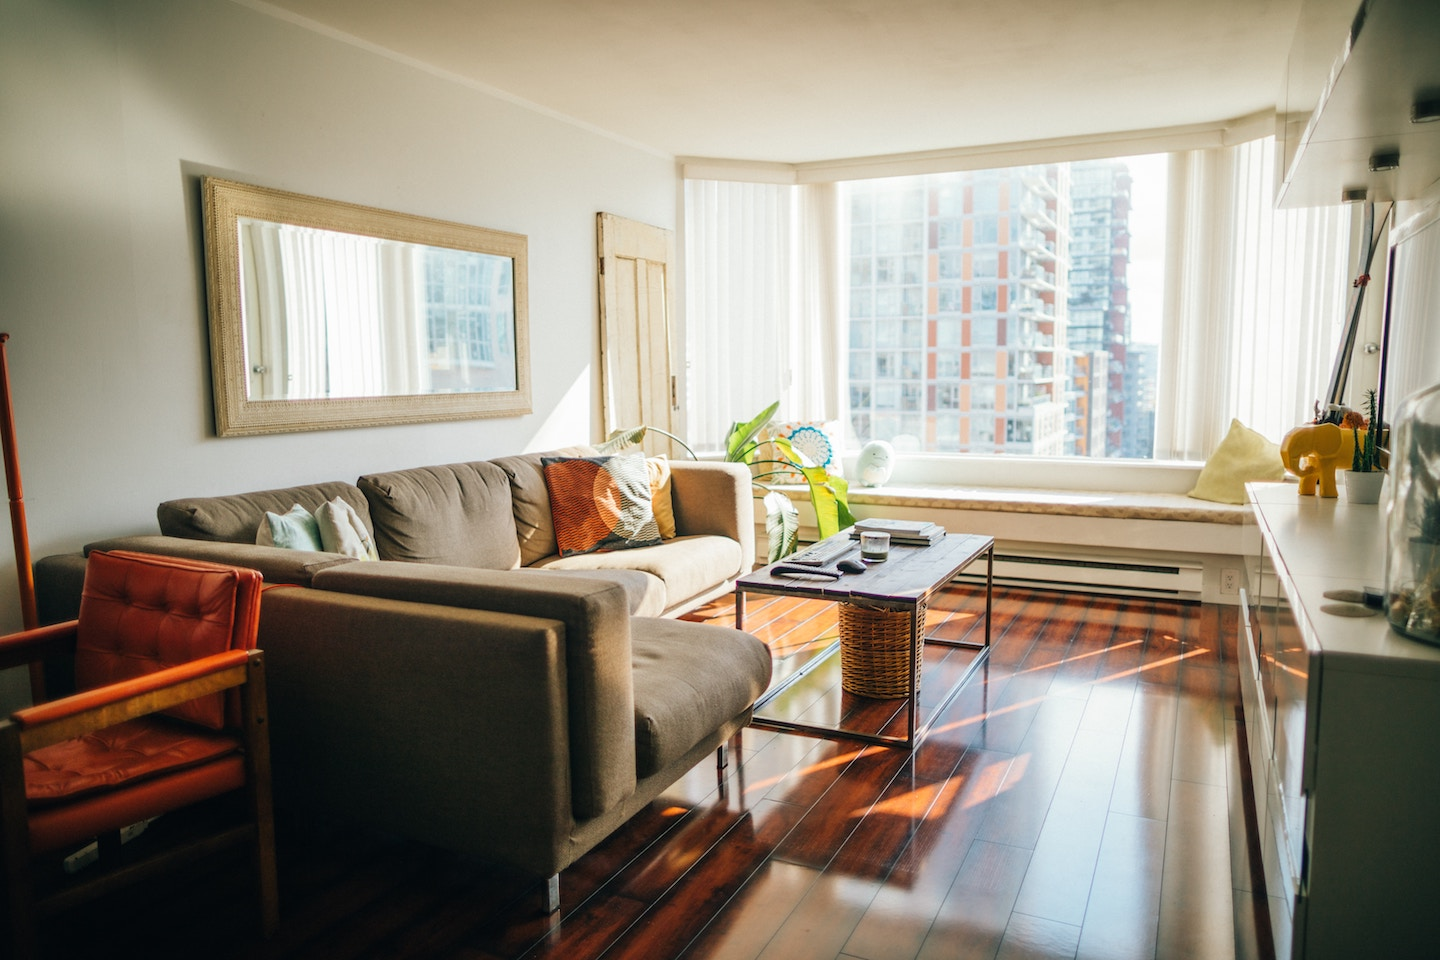 What You Need to Know About Buying a Condo as an Investment Property